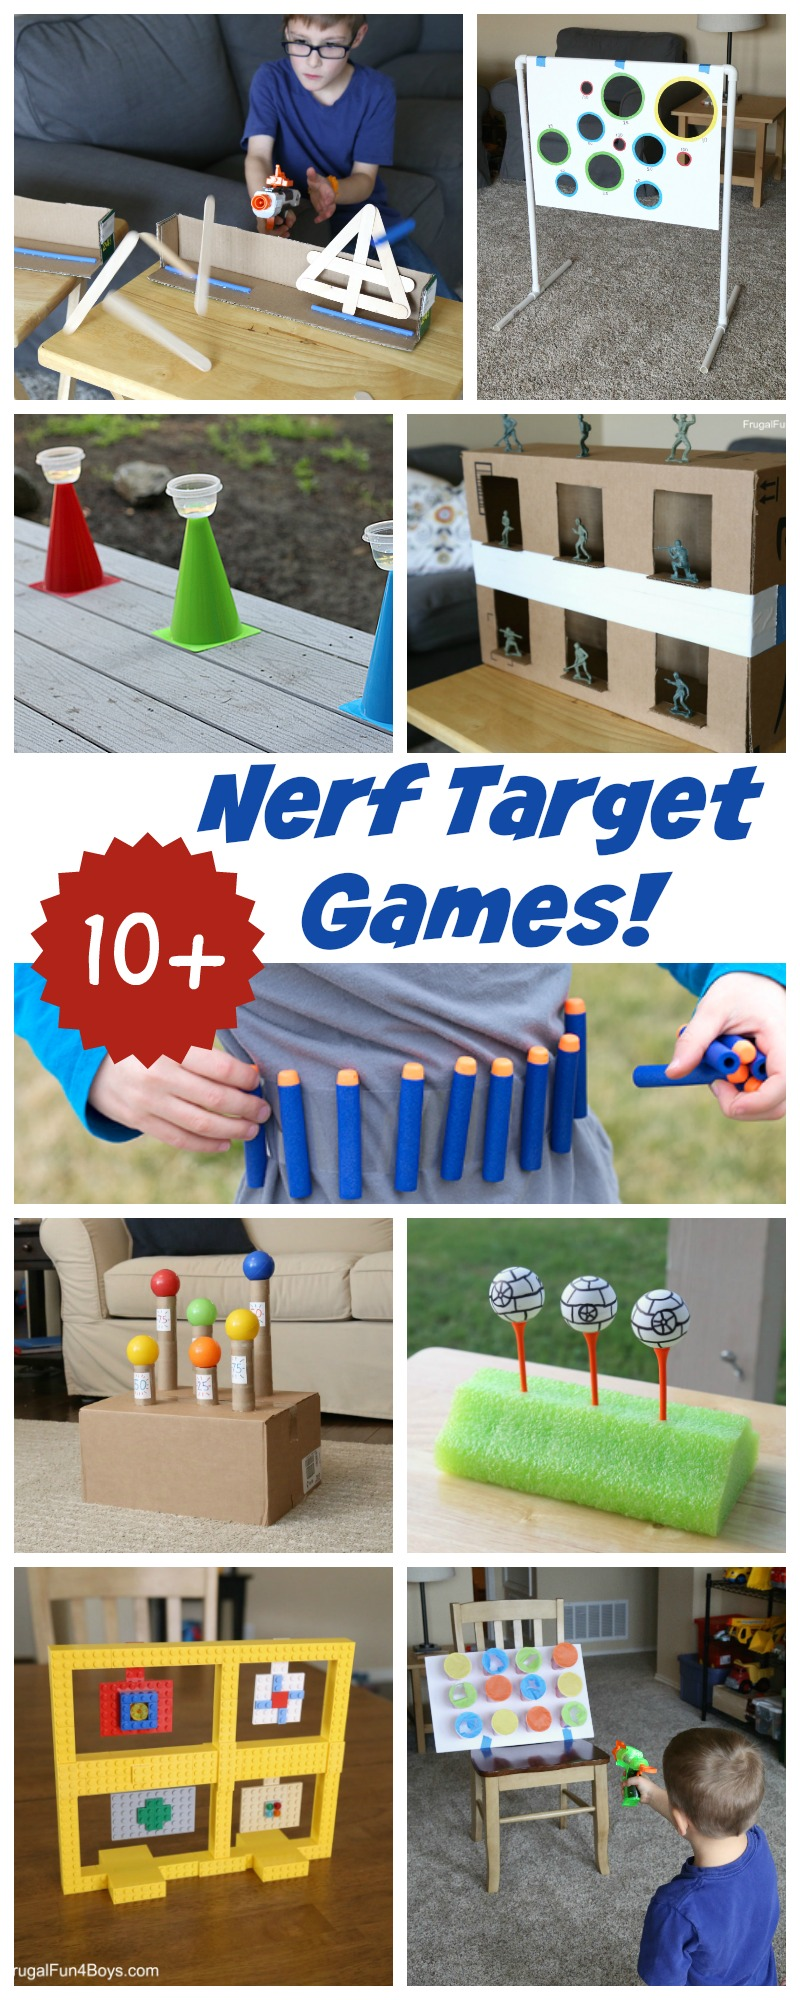 10+ of the BEST Nerf Target Games